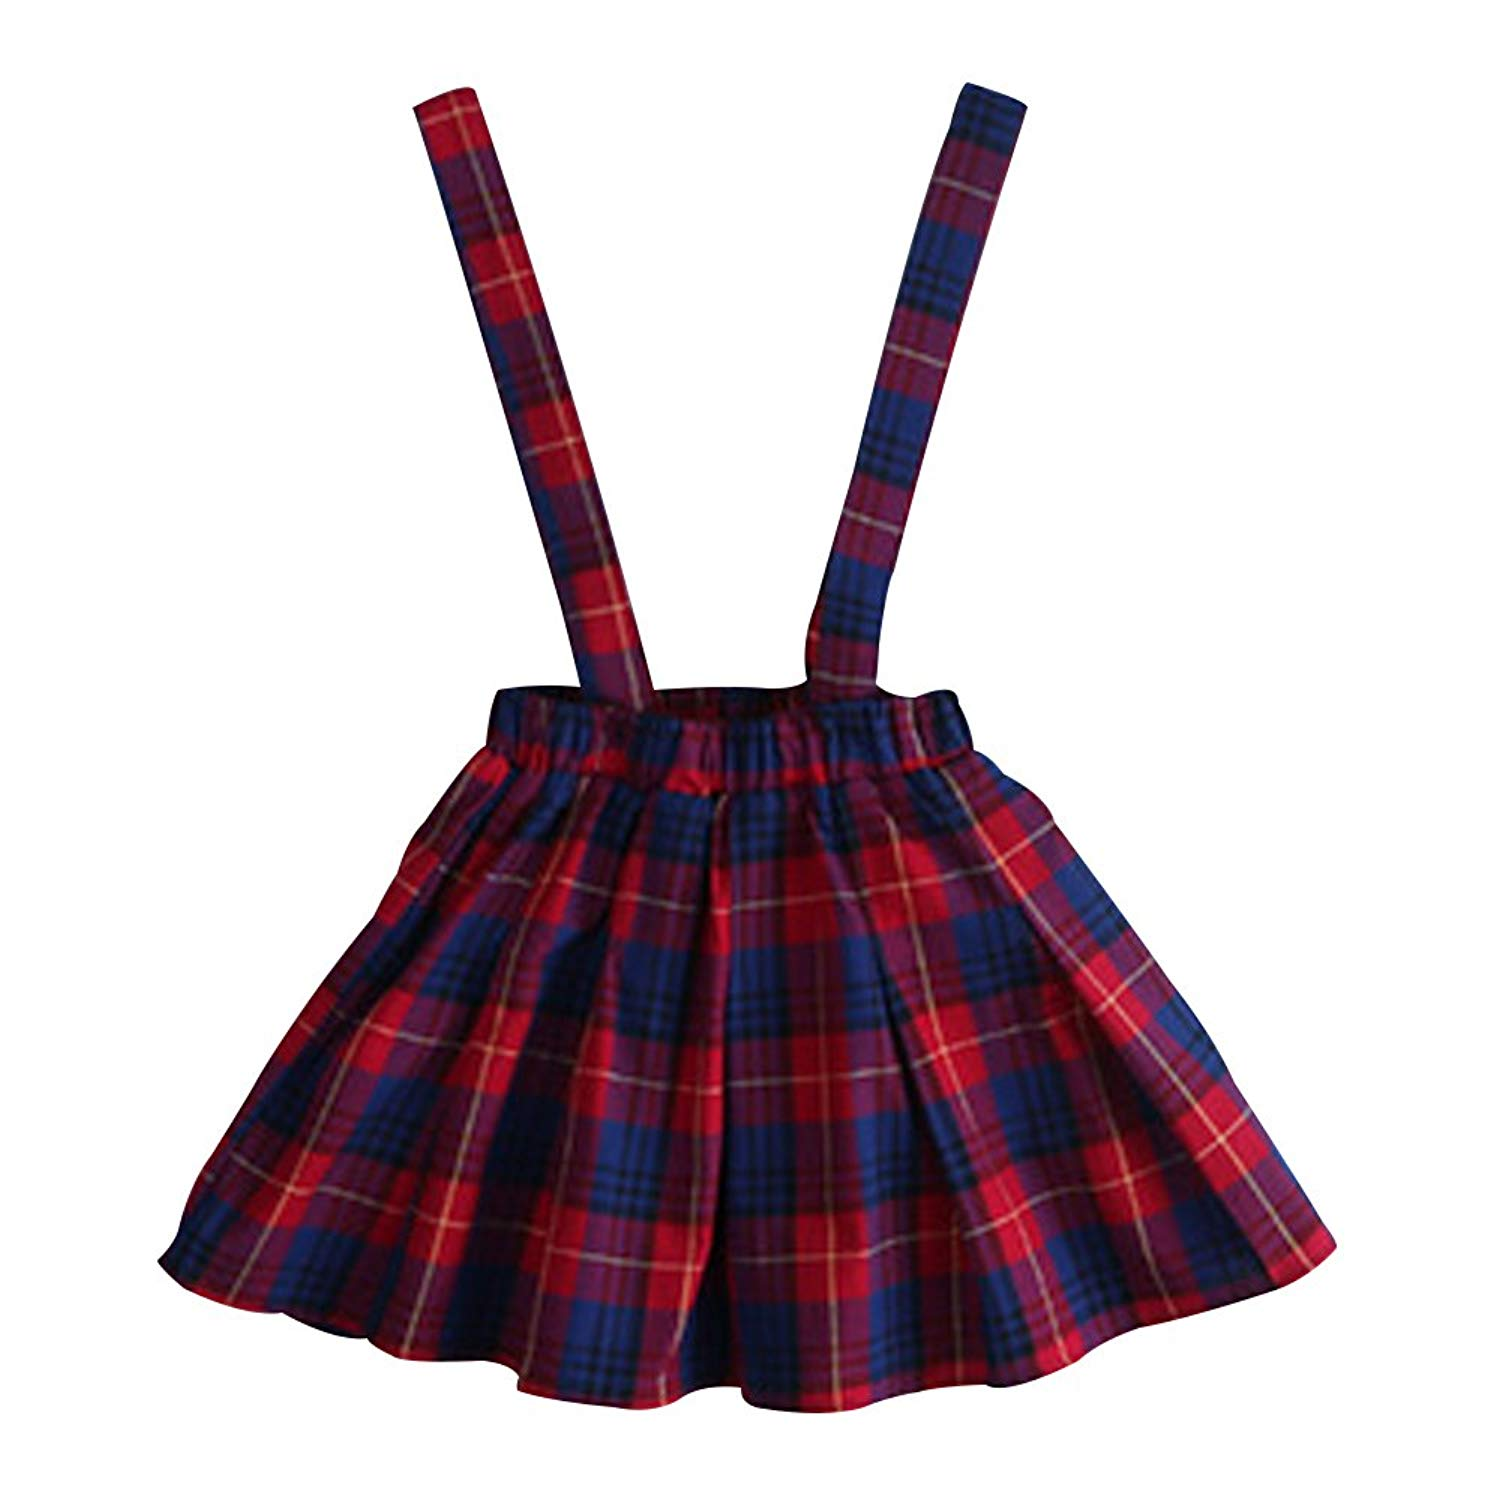 403c21bb2c7 Get Quotations · Mesinsefra Red Plaid Overall Skirt Girls School Overalls  Skirts Cute Plaid Skirt Age 2-6T